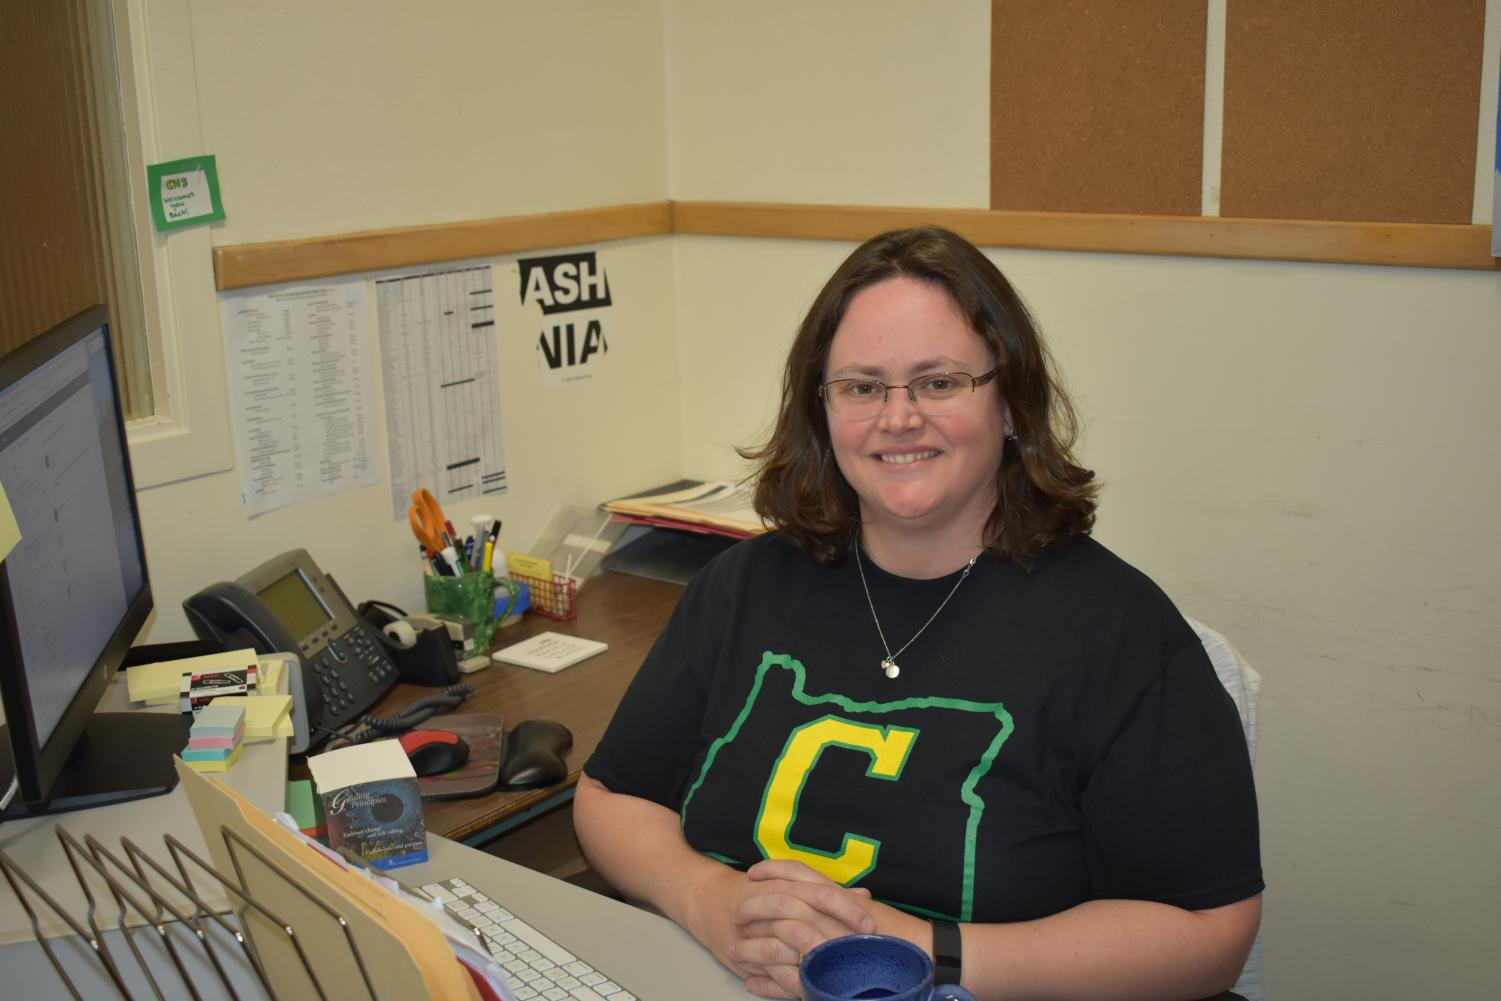 Margie Sudyam was recently hired as the new testing coordinator and part time tech support worker.